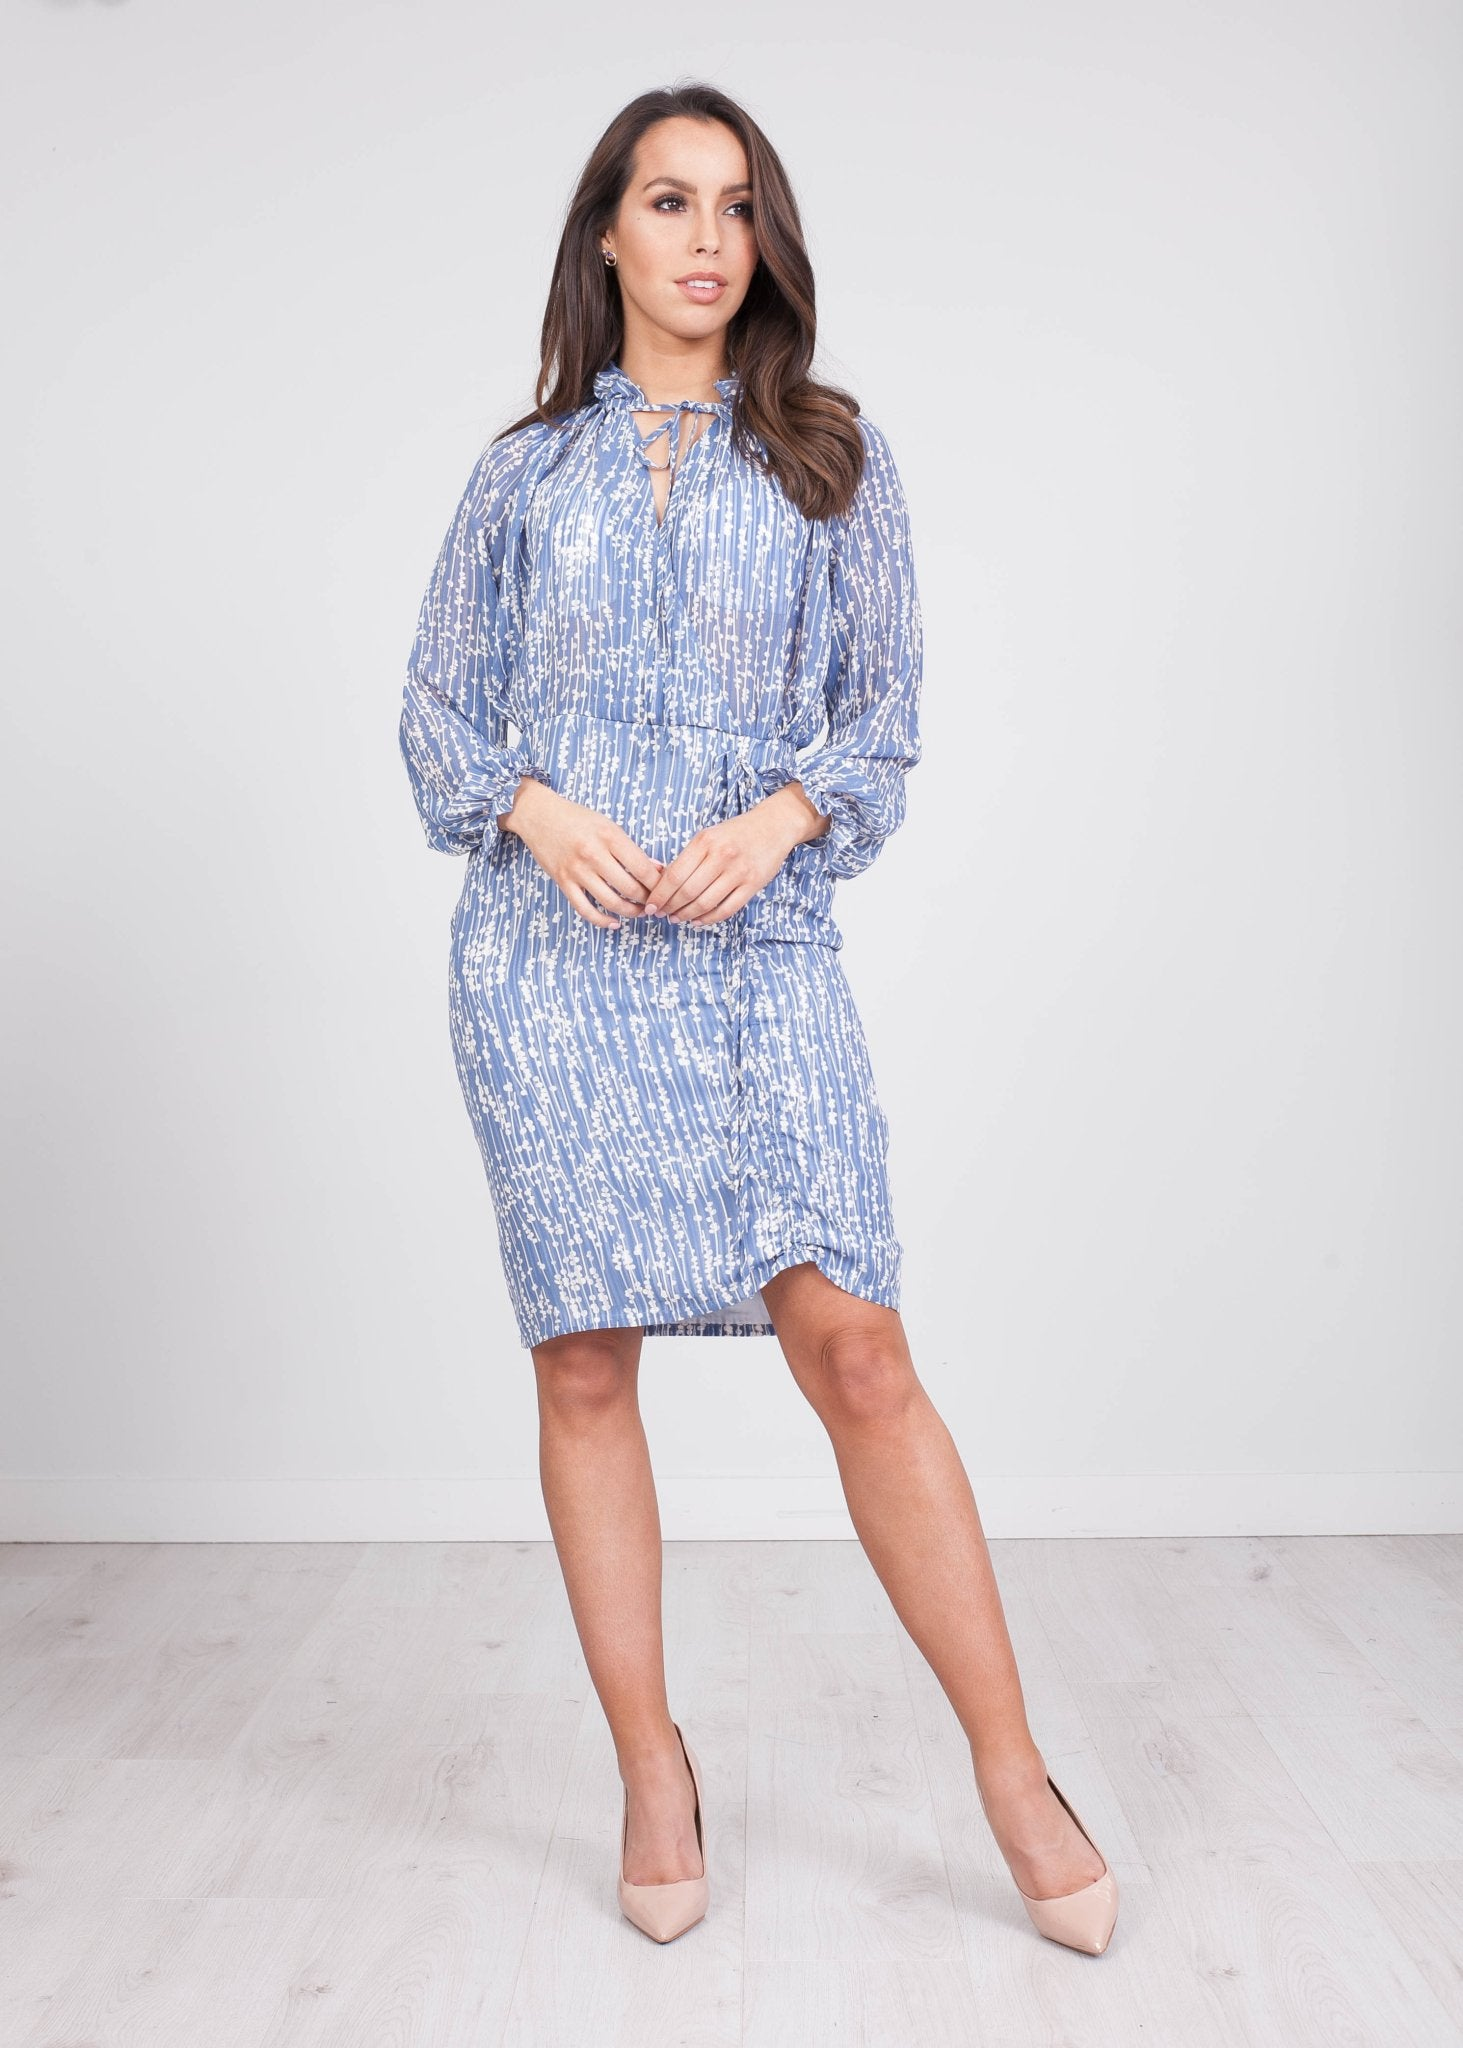 Jasmine Blue Printed Dress - The Walk in Wardrobe